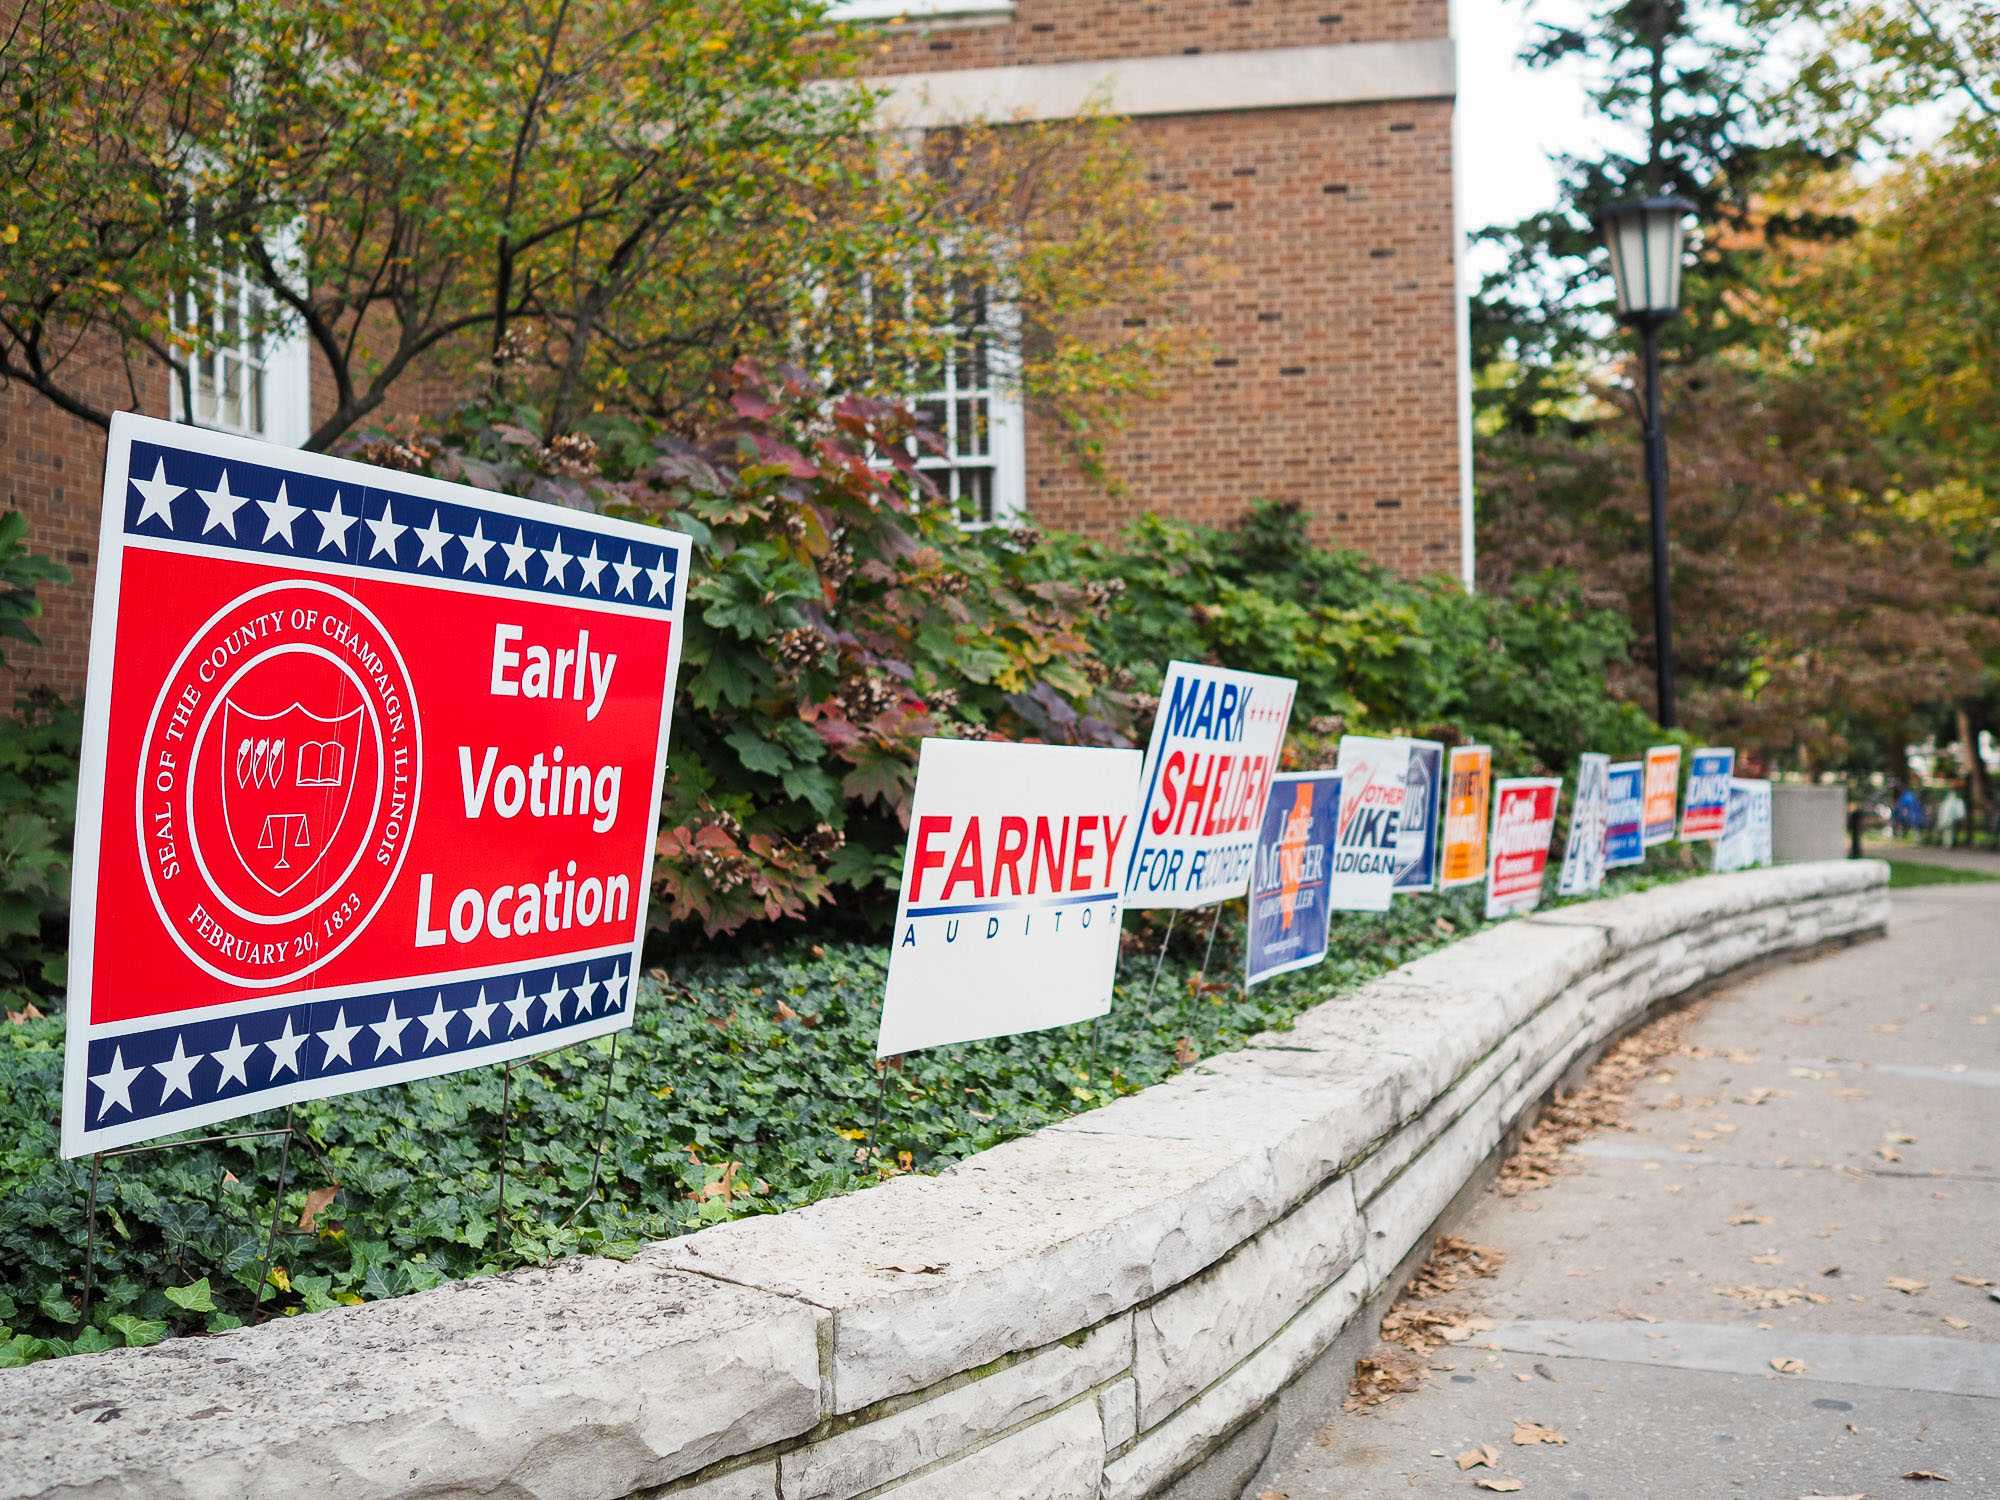 Early voting started at the Illini Union on Monday. Many campaigns have placed signs out front to persuade voters.